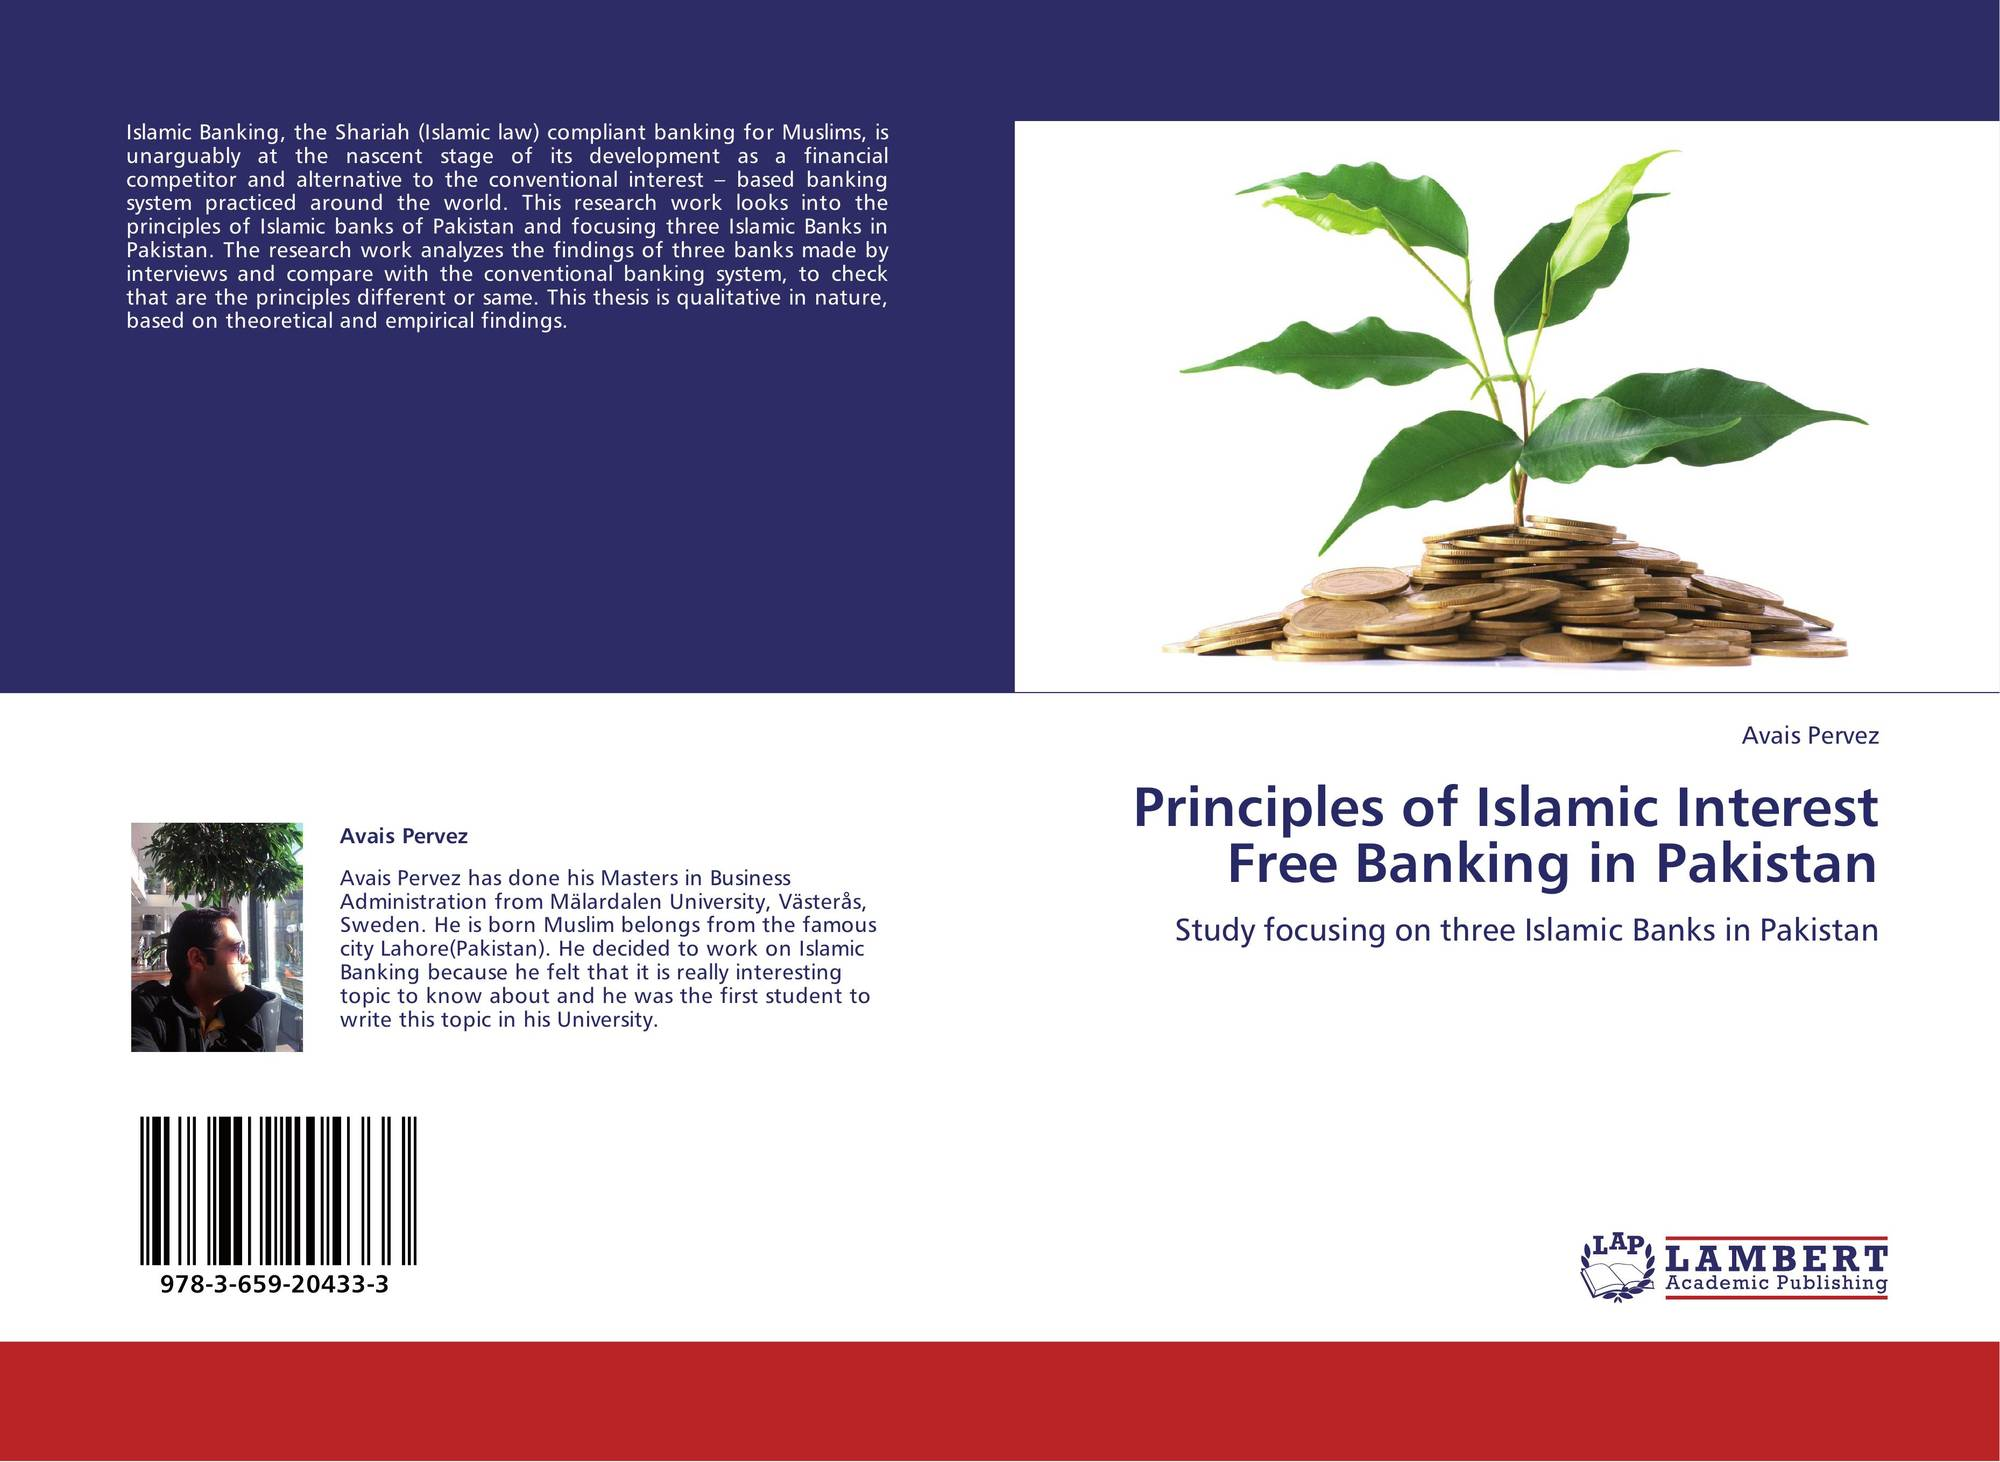 an analysis of the political system of islam based on the three principles of towhid